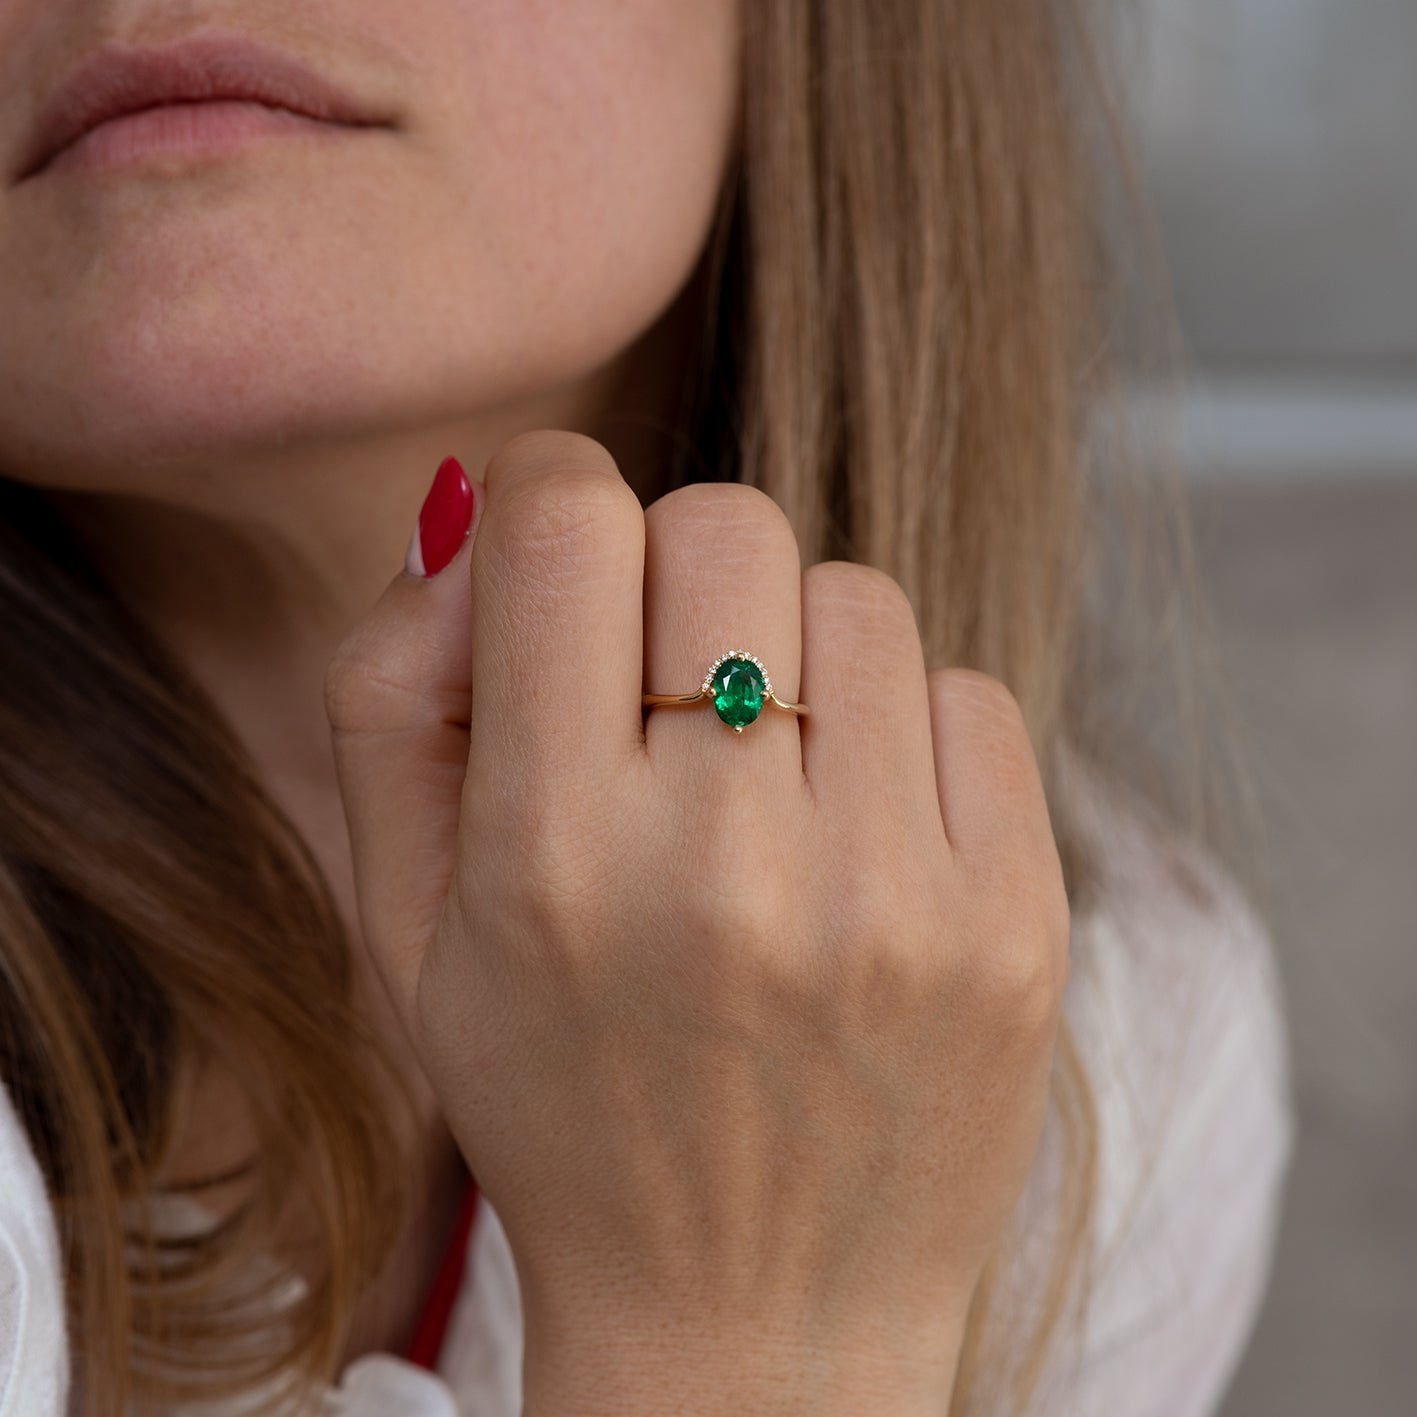 Floating Oval-Cut Emerald engagement ring3